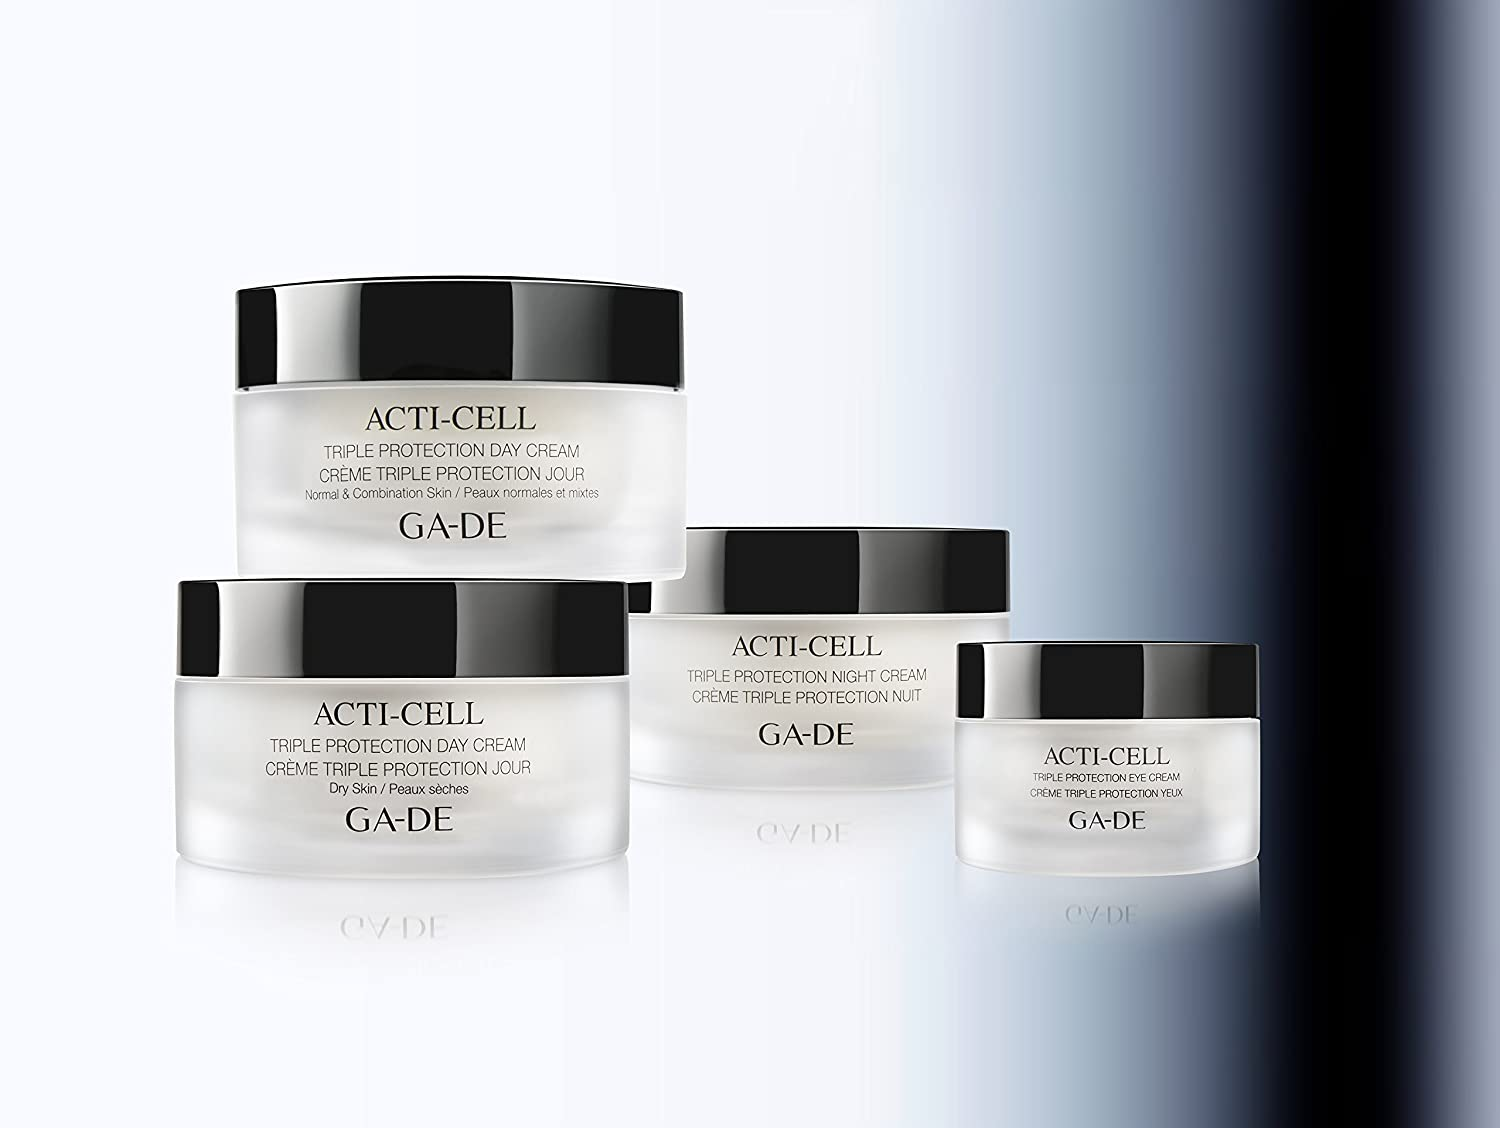 Acti-cell Triple Protection Day Cream For Dry Skin 50ml Dr Dennis Gross - Hydra-Pure Firming Serum - 30ml/1oz